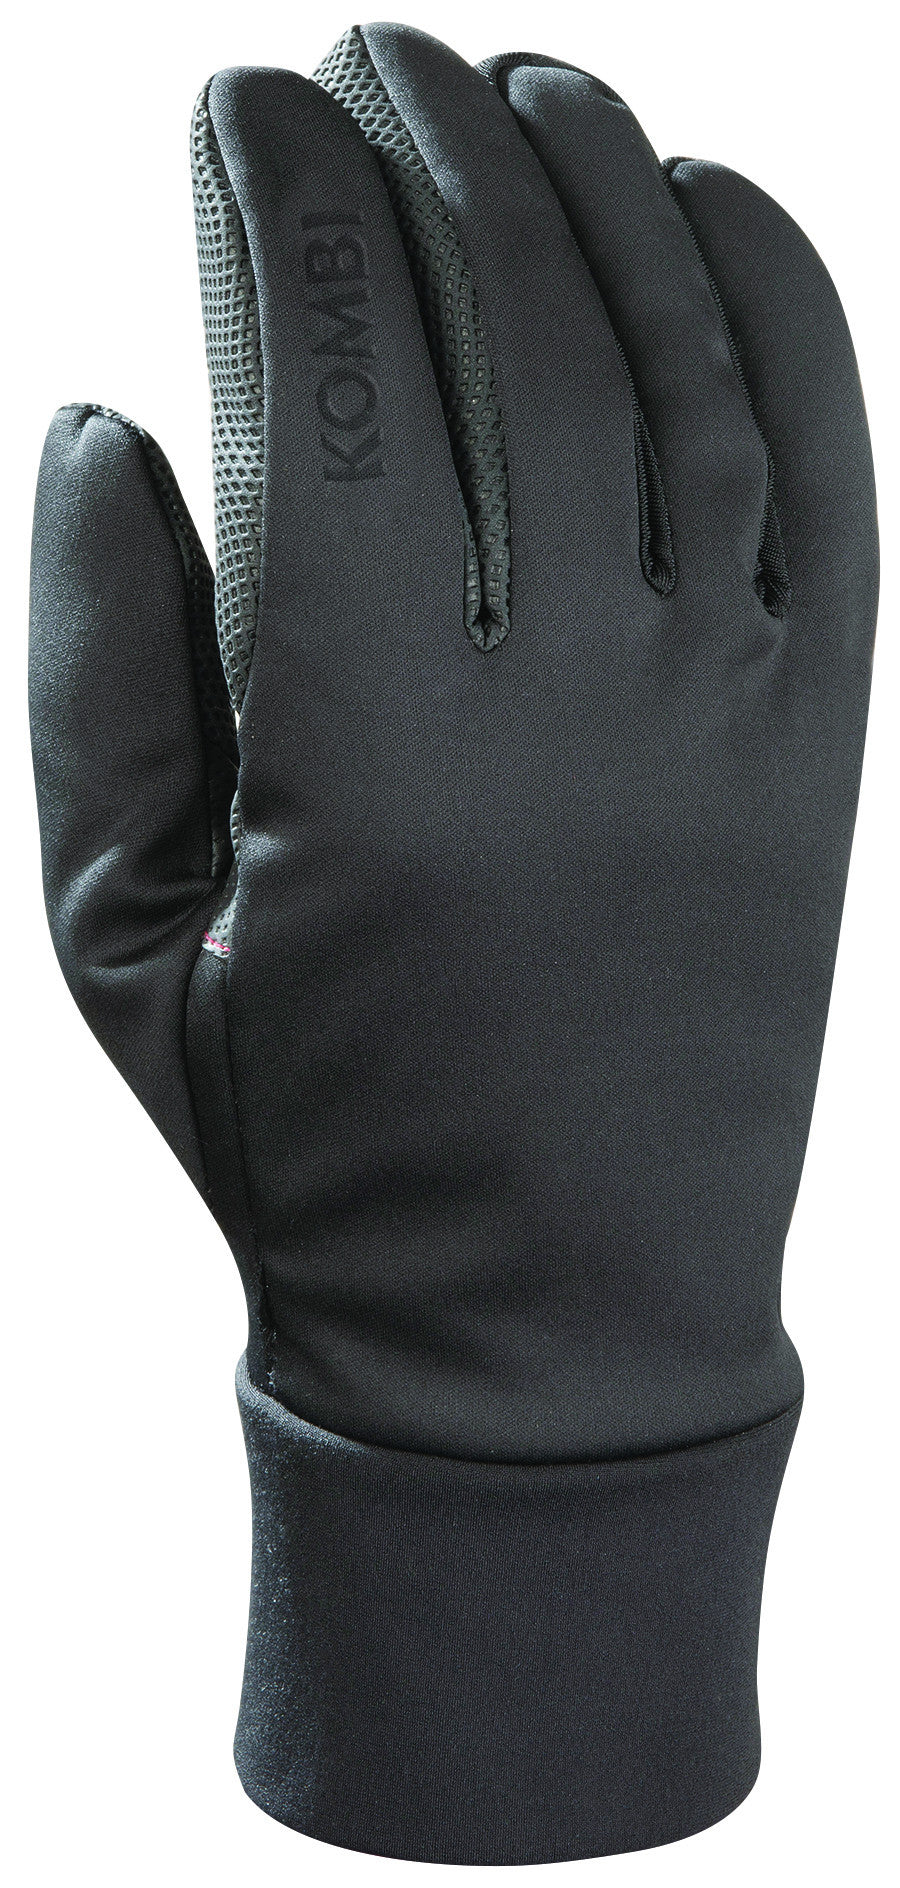 Kombi The Multi-Tasker Glove - Men's